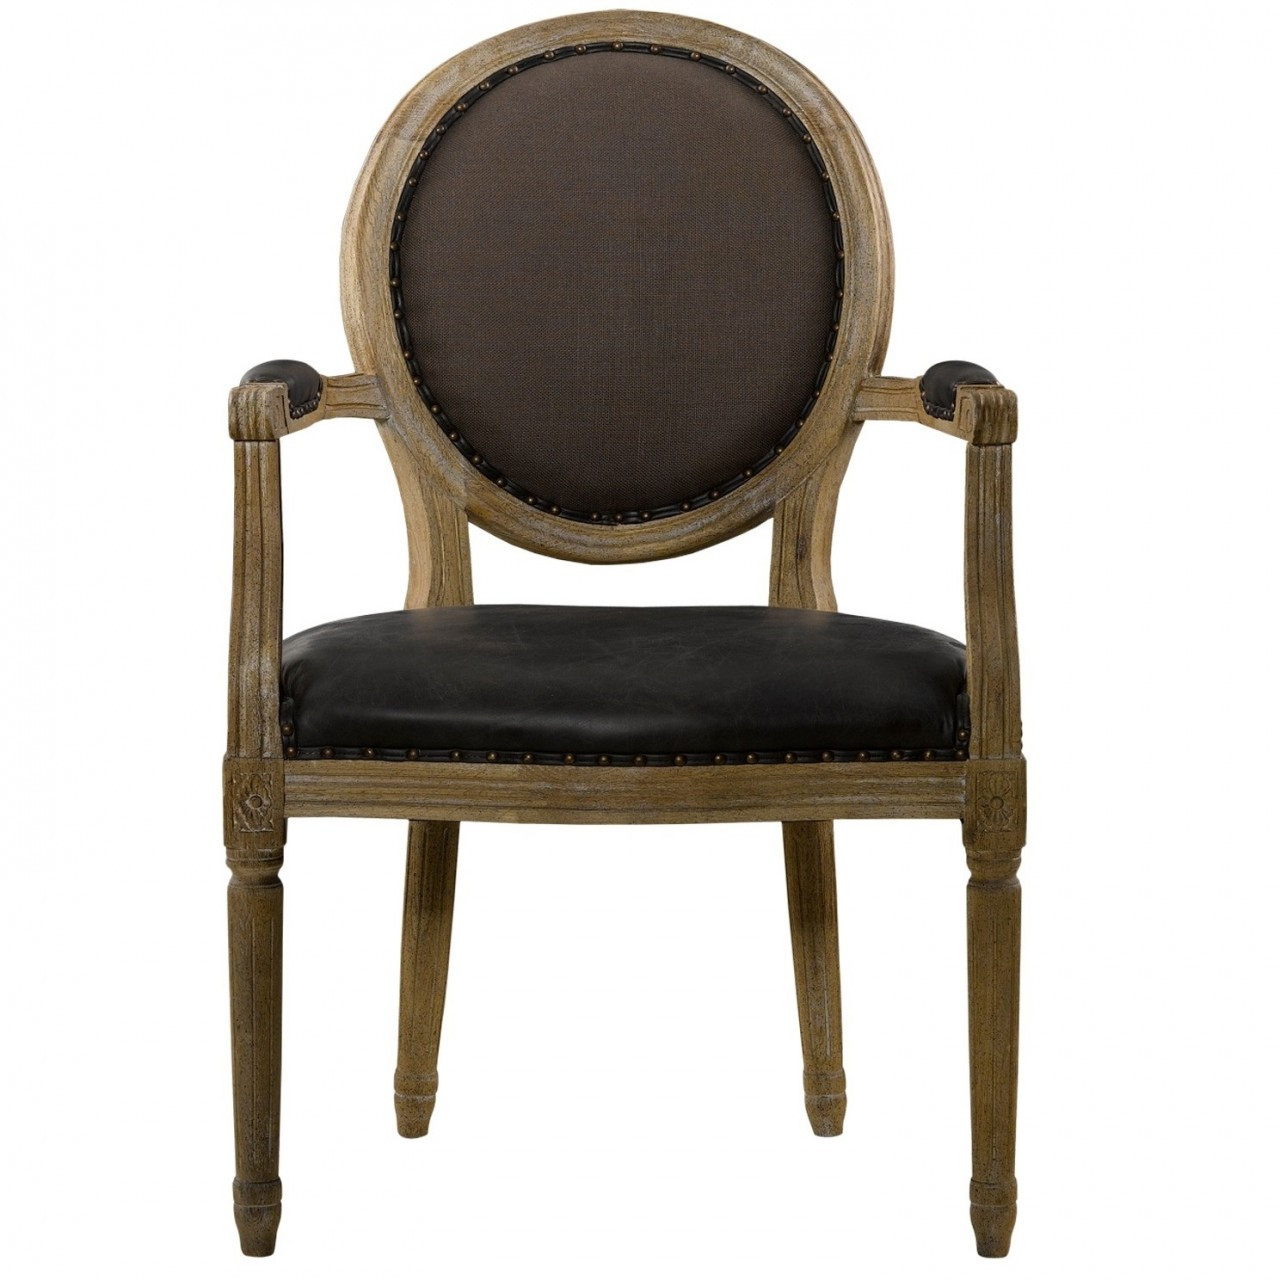 Home FURNITURE Dining Room Louis Dining Chair in Brown Leather